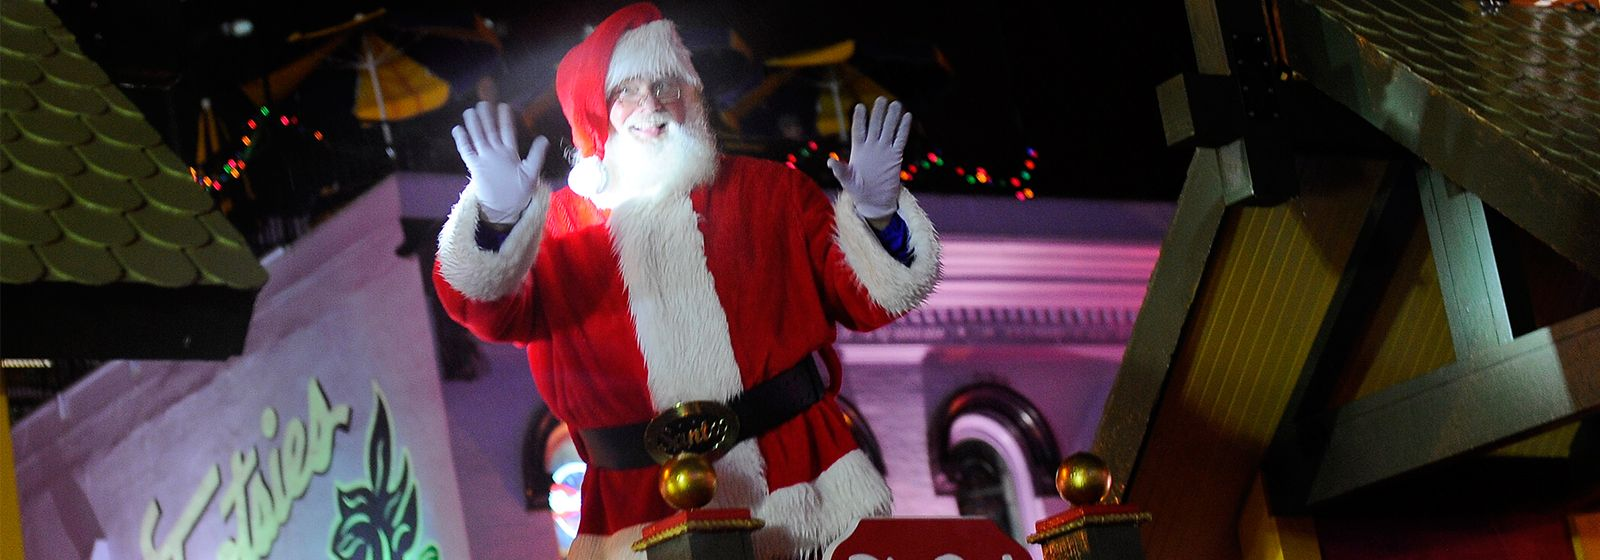 Nashville Christmas parade steeped in history